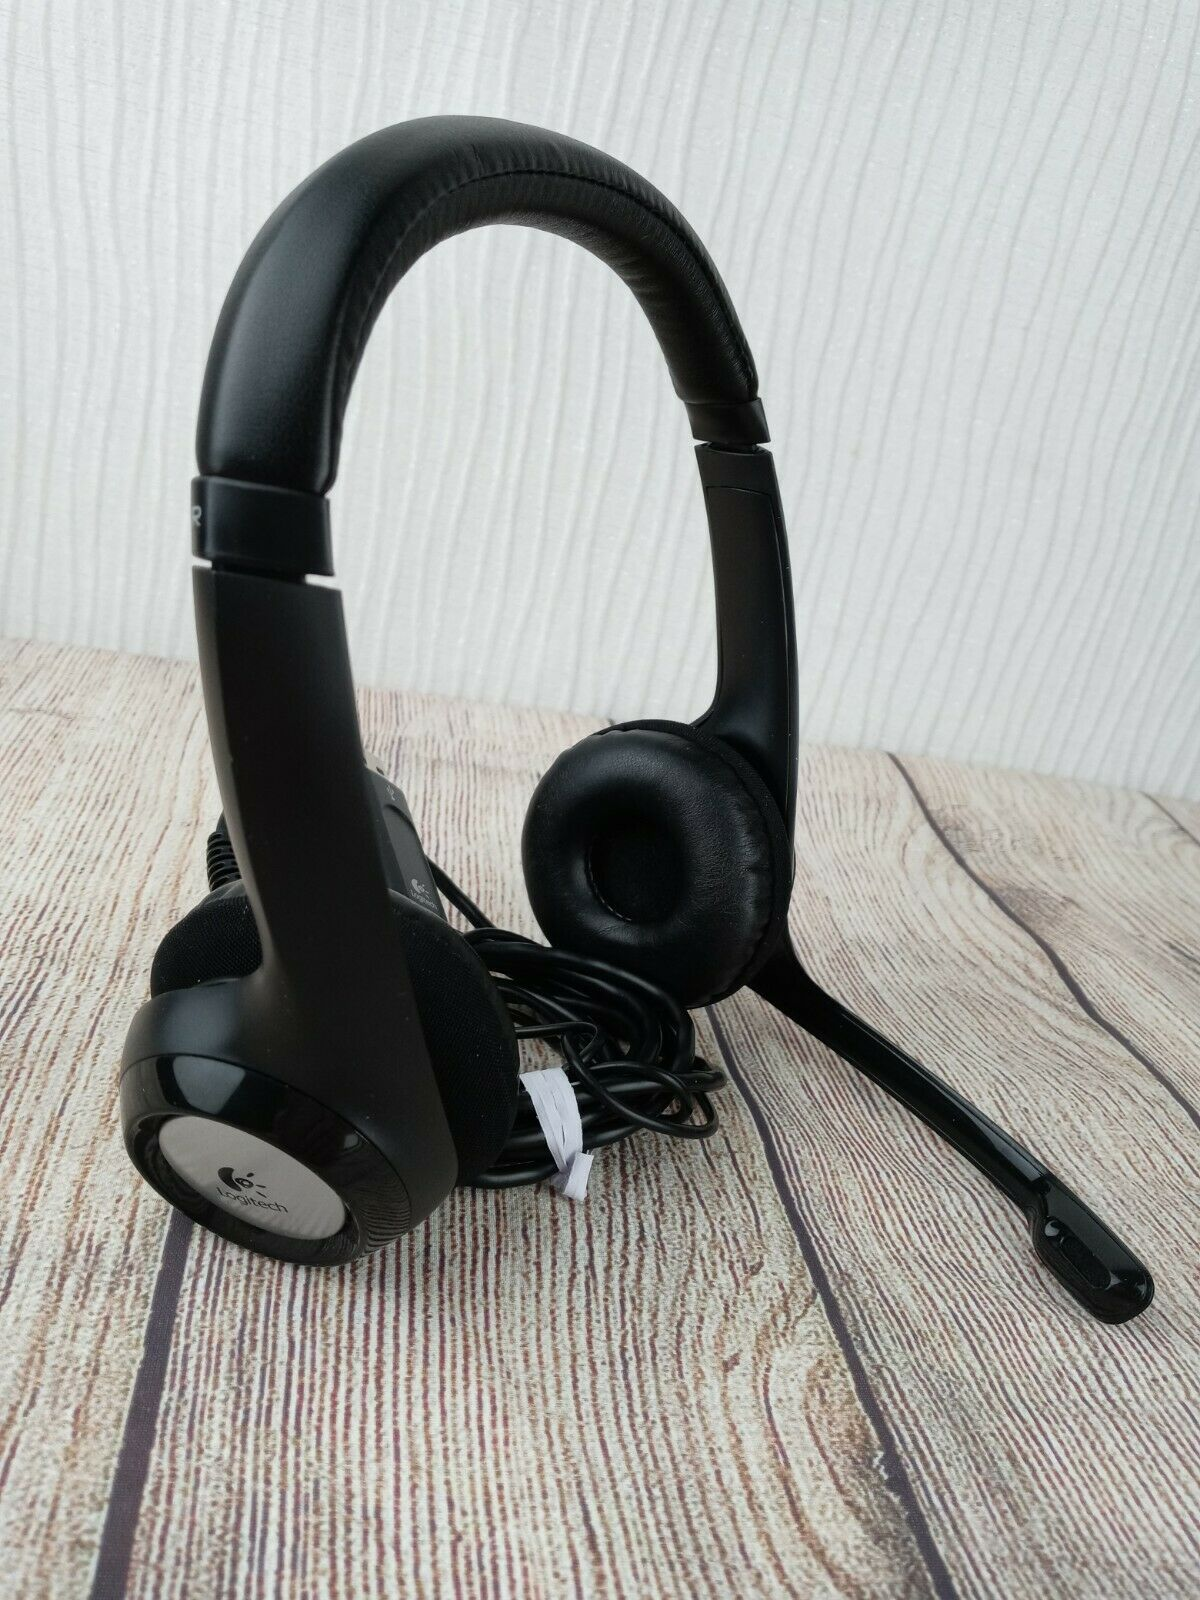 Logitech Usb Headset Headphones 881 000082 A 00027 With Microphone For Sale Online Ebay